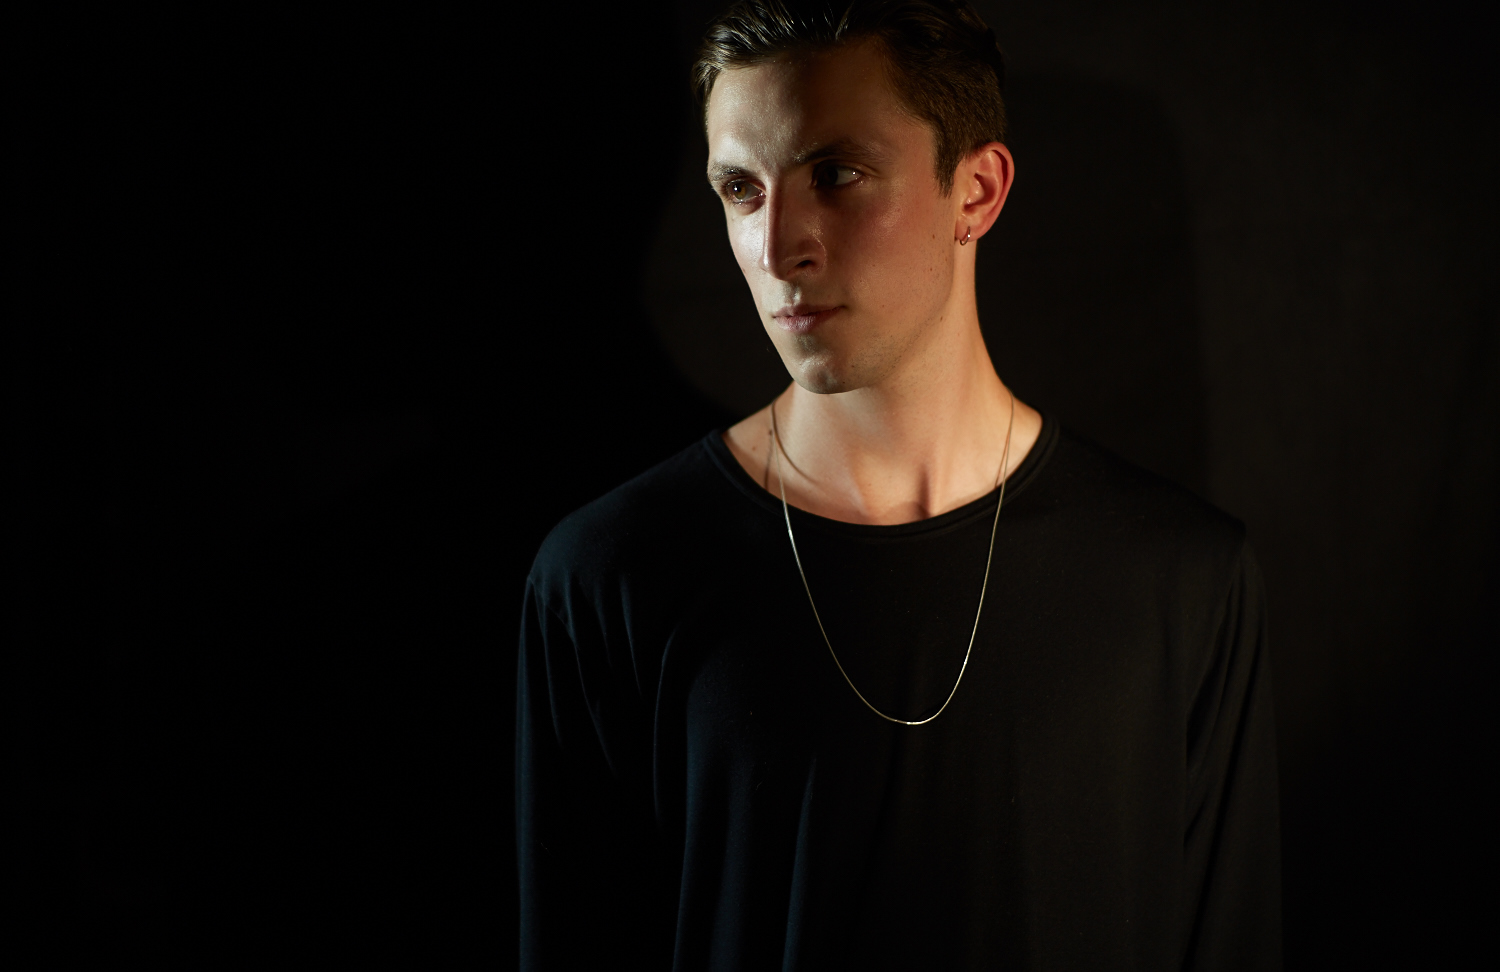 Stream 'Sun', a brooding track from CYPHR's <i>Ekleipsis</i> EP, forthcoming on Her Records